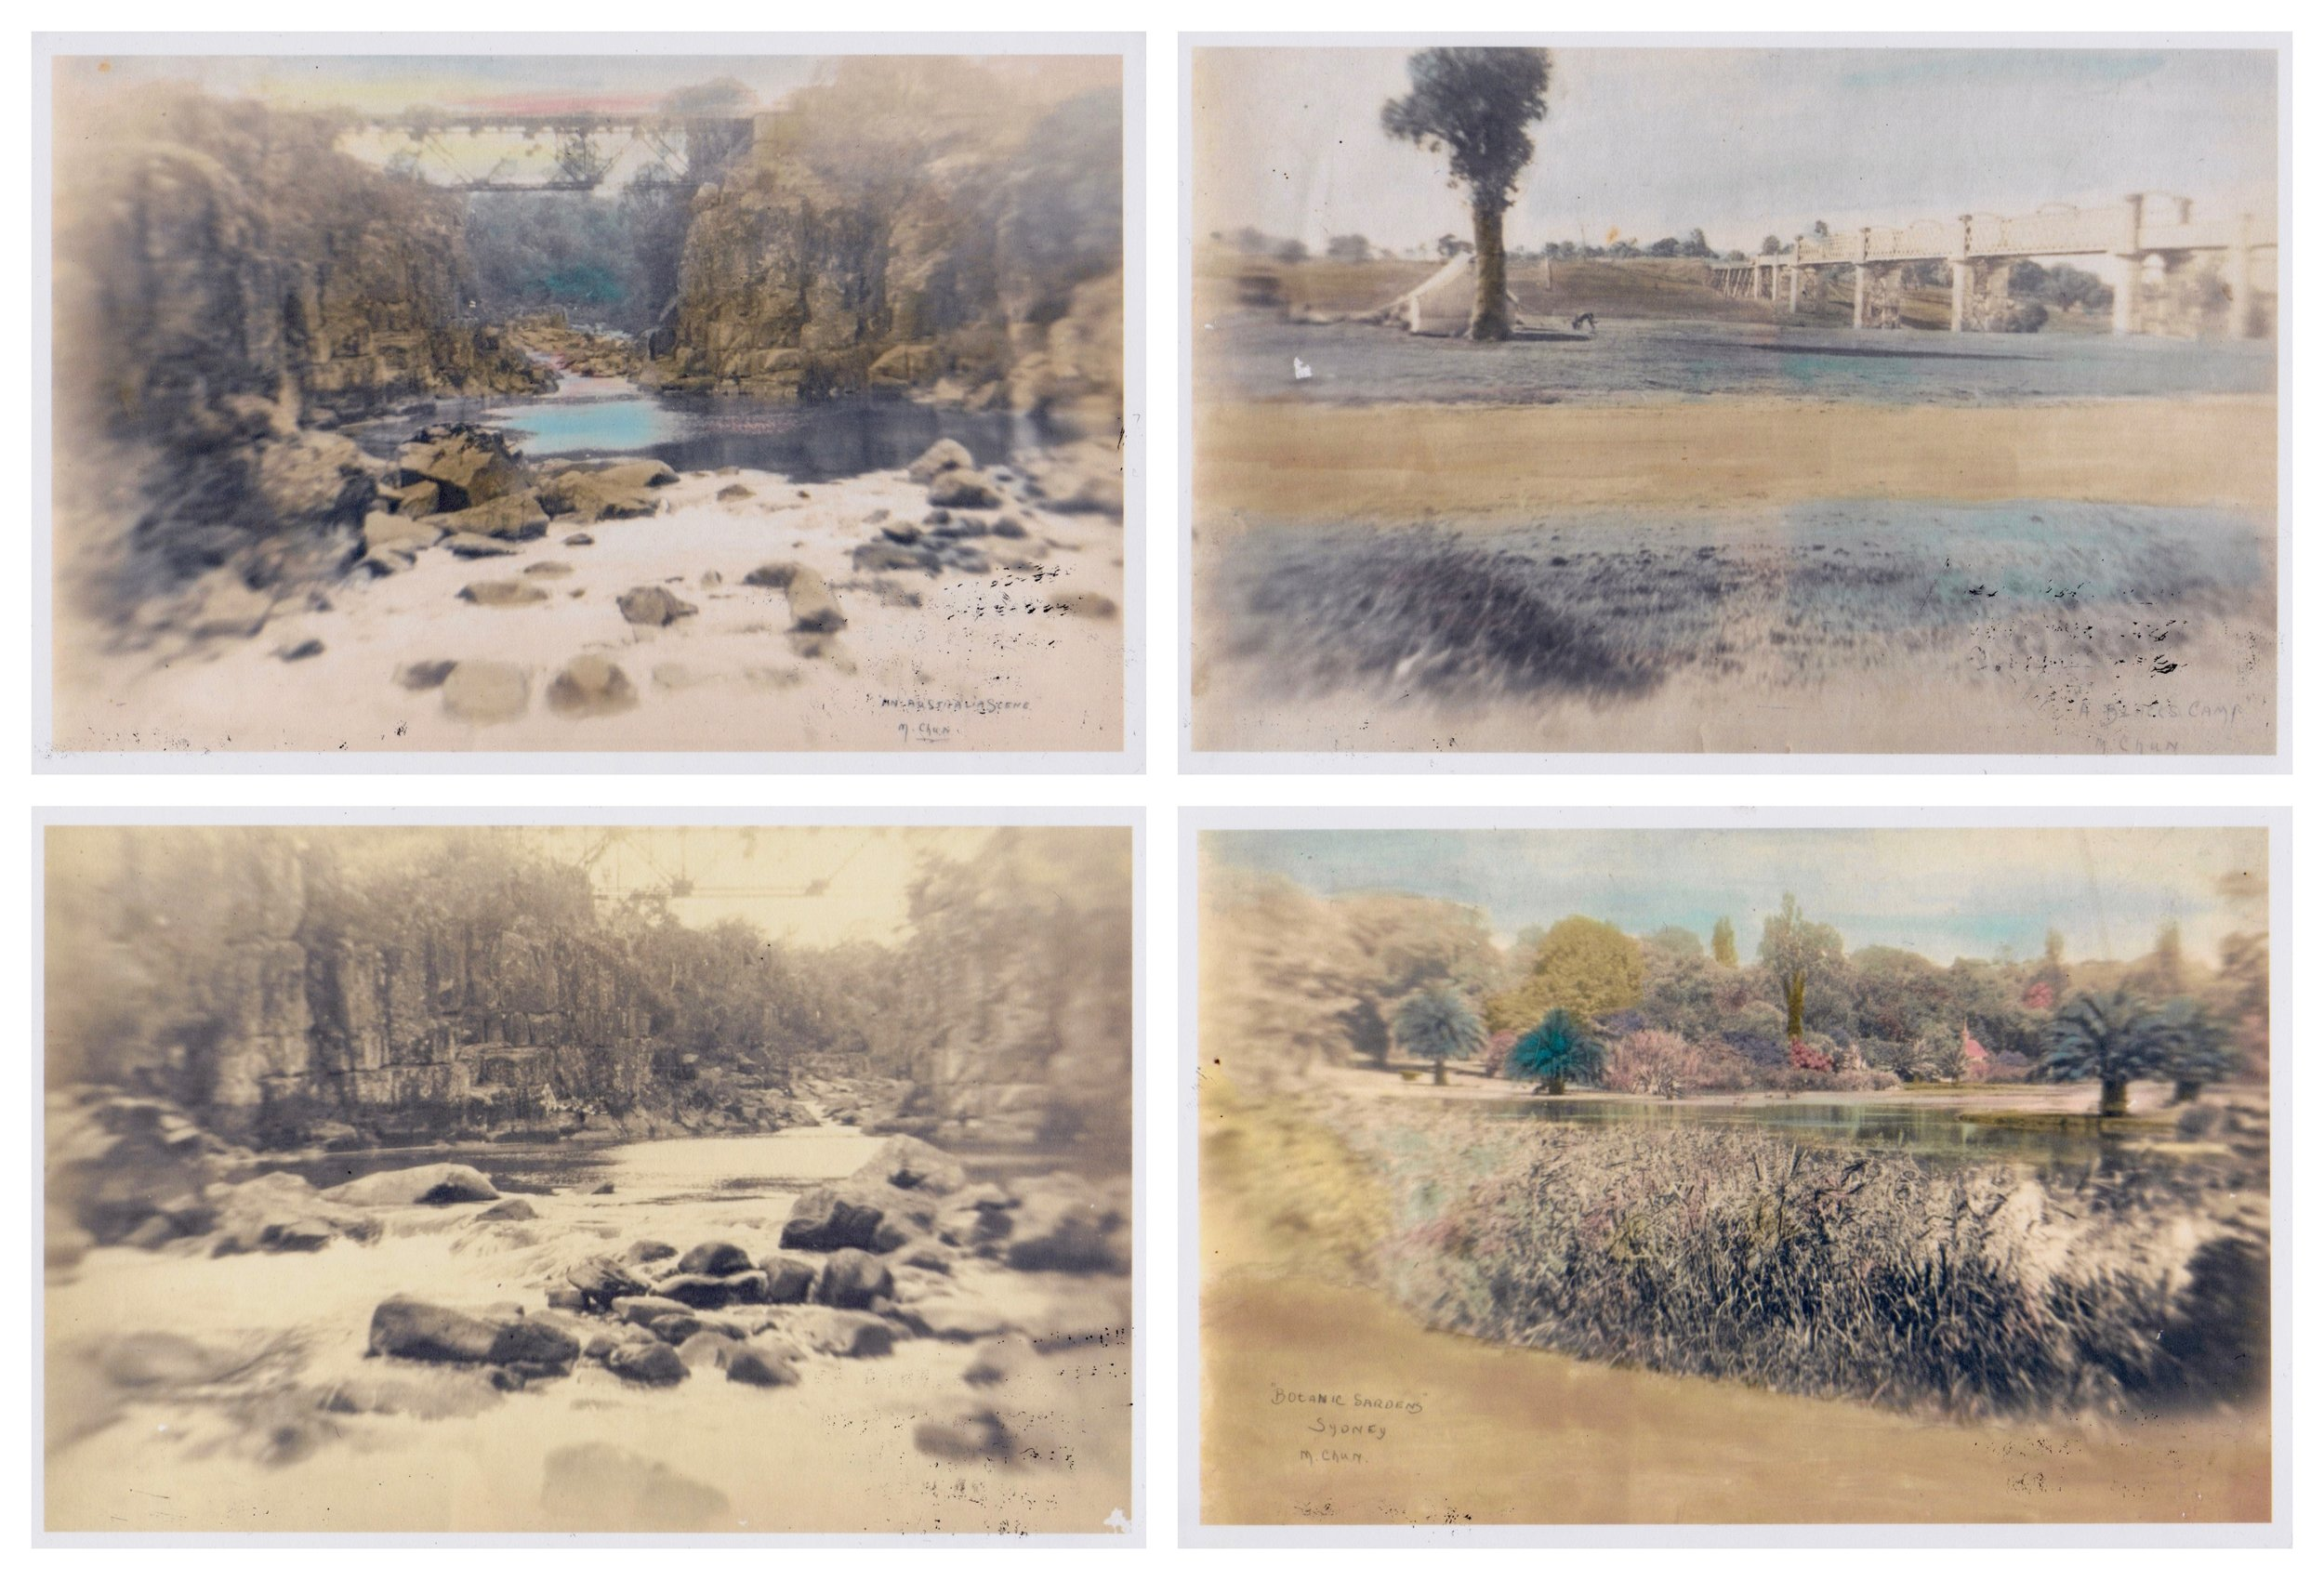 Matt Chun / Landscapes / drawing on archival photography, originally taken and hand-coloured by the artist's grandfather / 1920 - 2019